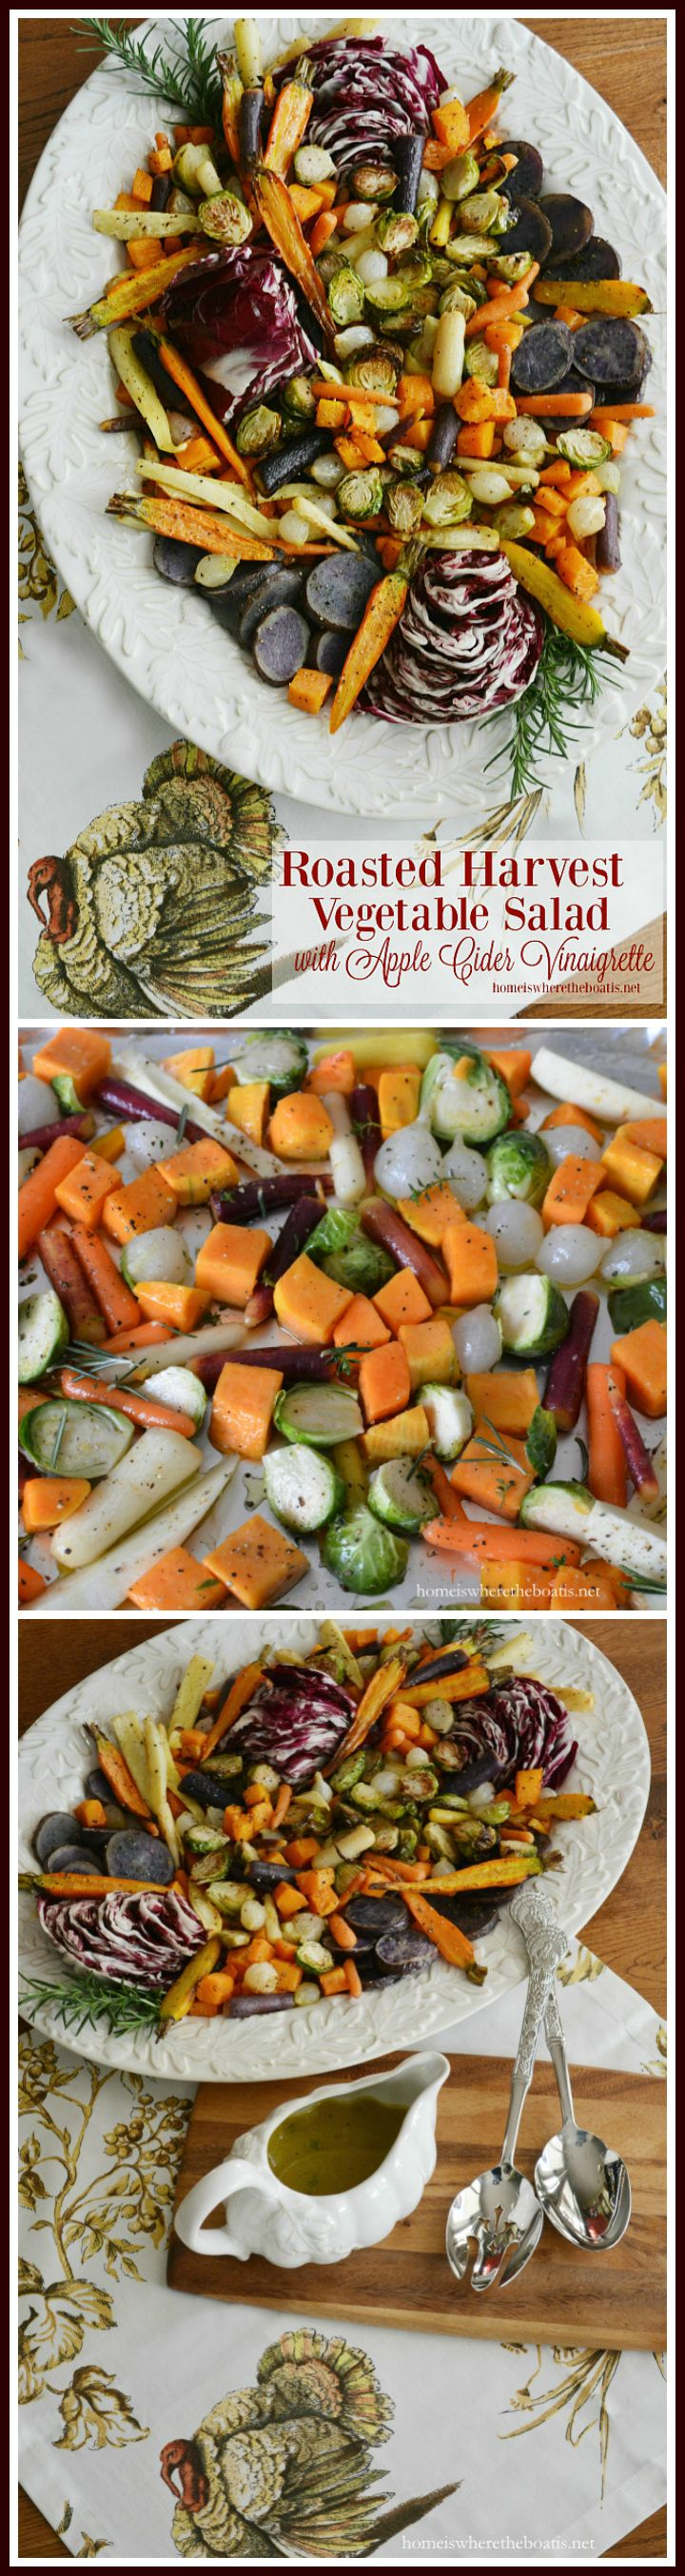 Roasted Harvest Vegetable Salad with Apple Cider Vinaigrette, a healthy and colorful addition to your Thanksgiving feast! | homeiswheretheboatis.net #Thanksgiving #side #healthy